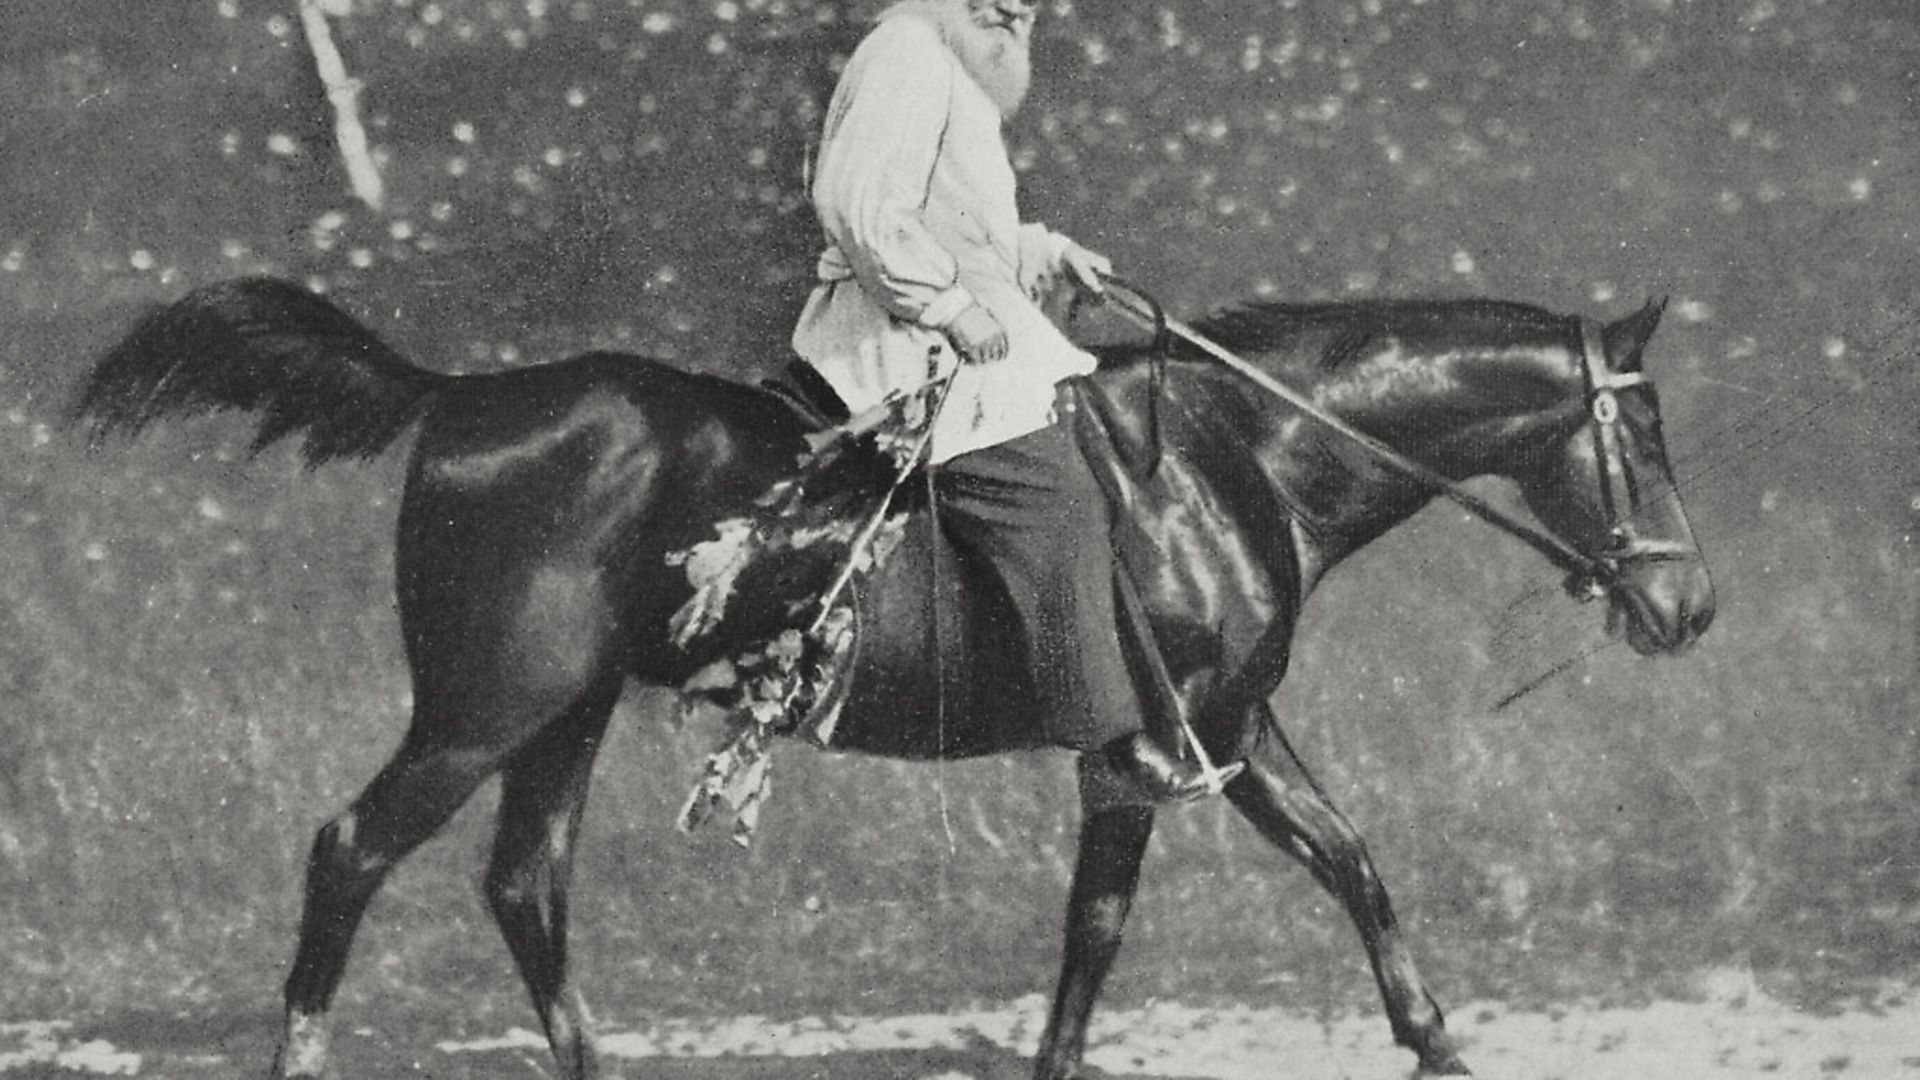 Lev Tolstoy (1828-1910) on horseback at his residence in Yasnaya Polyana, Russia, photo by Brocherel, from L'Illustrazione Italiana, November 20, 1910. - Credit: De Agostini via Getty Images